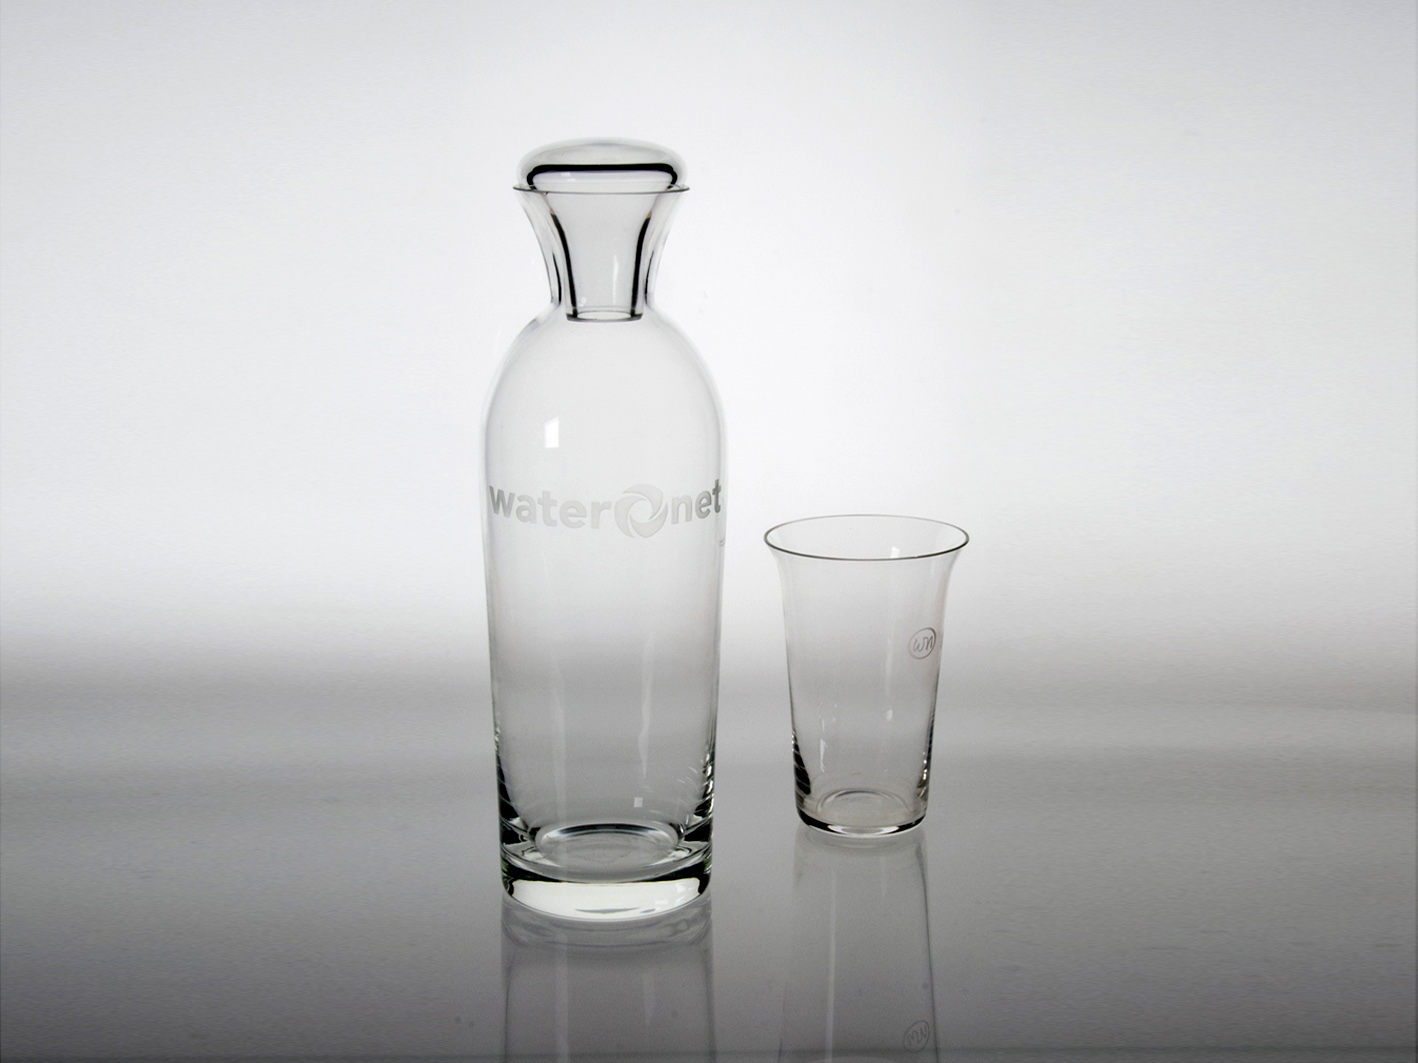 Waternet carafe and glass